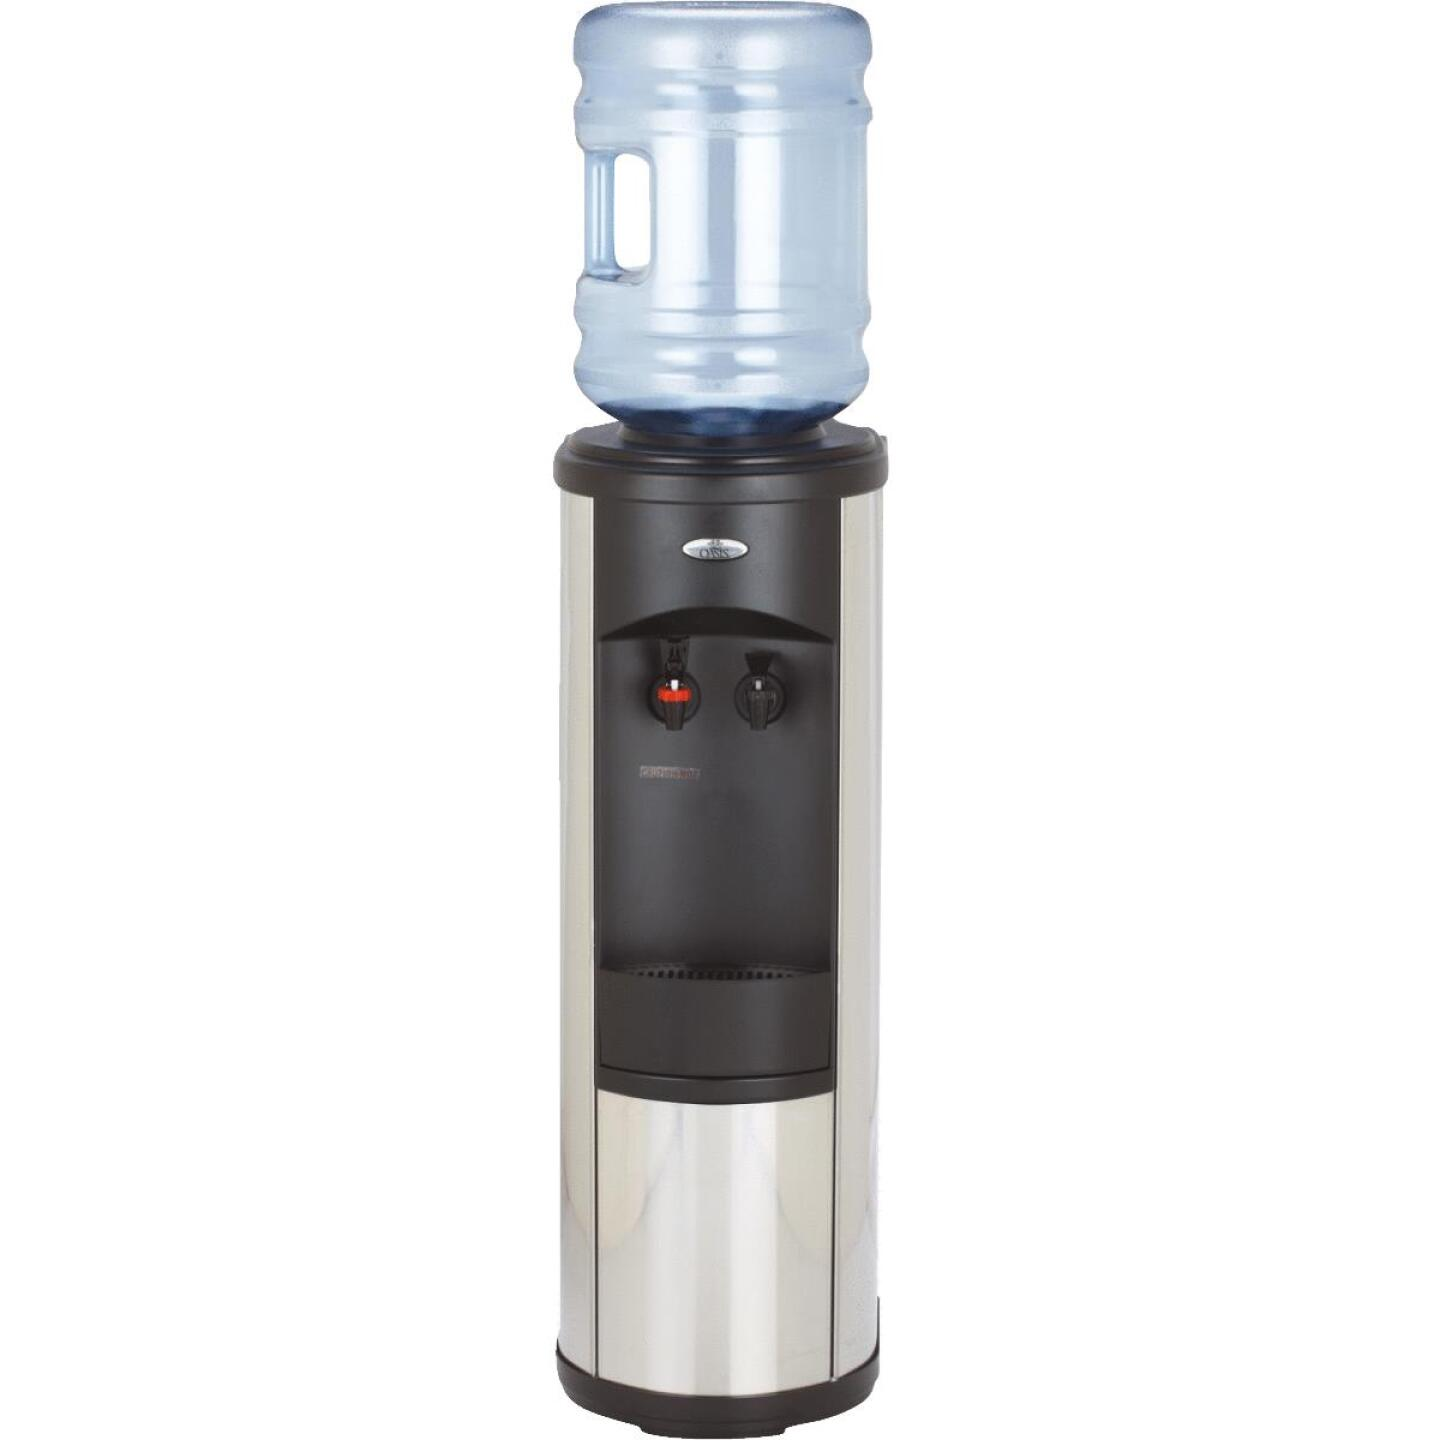 Oasis Artesian Series Residential/Commercial 5/6 Gal. Hot/Cold Water Cooler Image 1